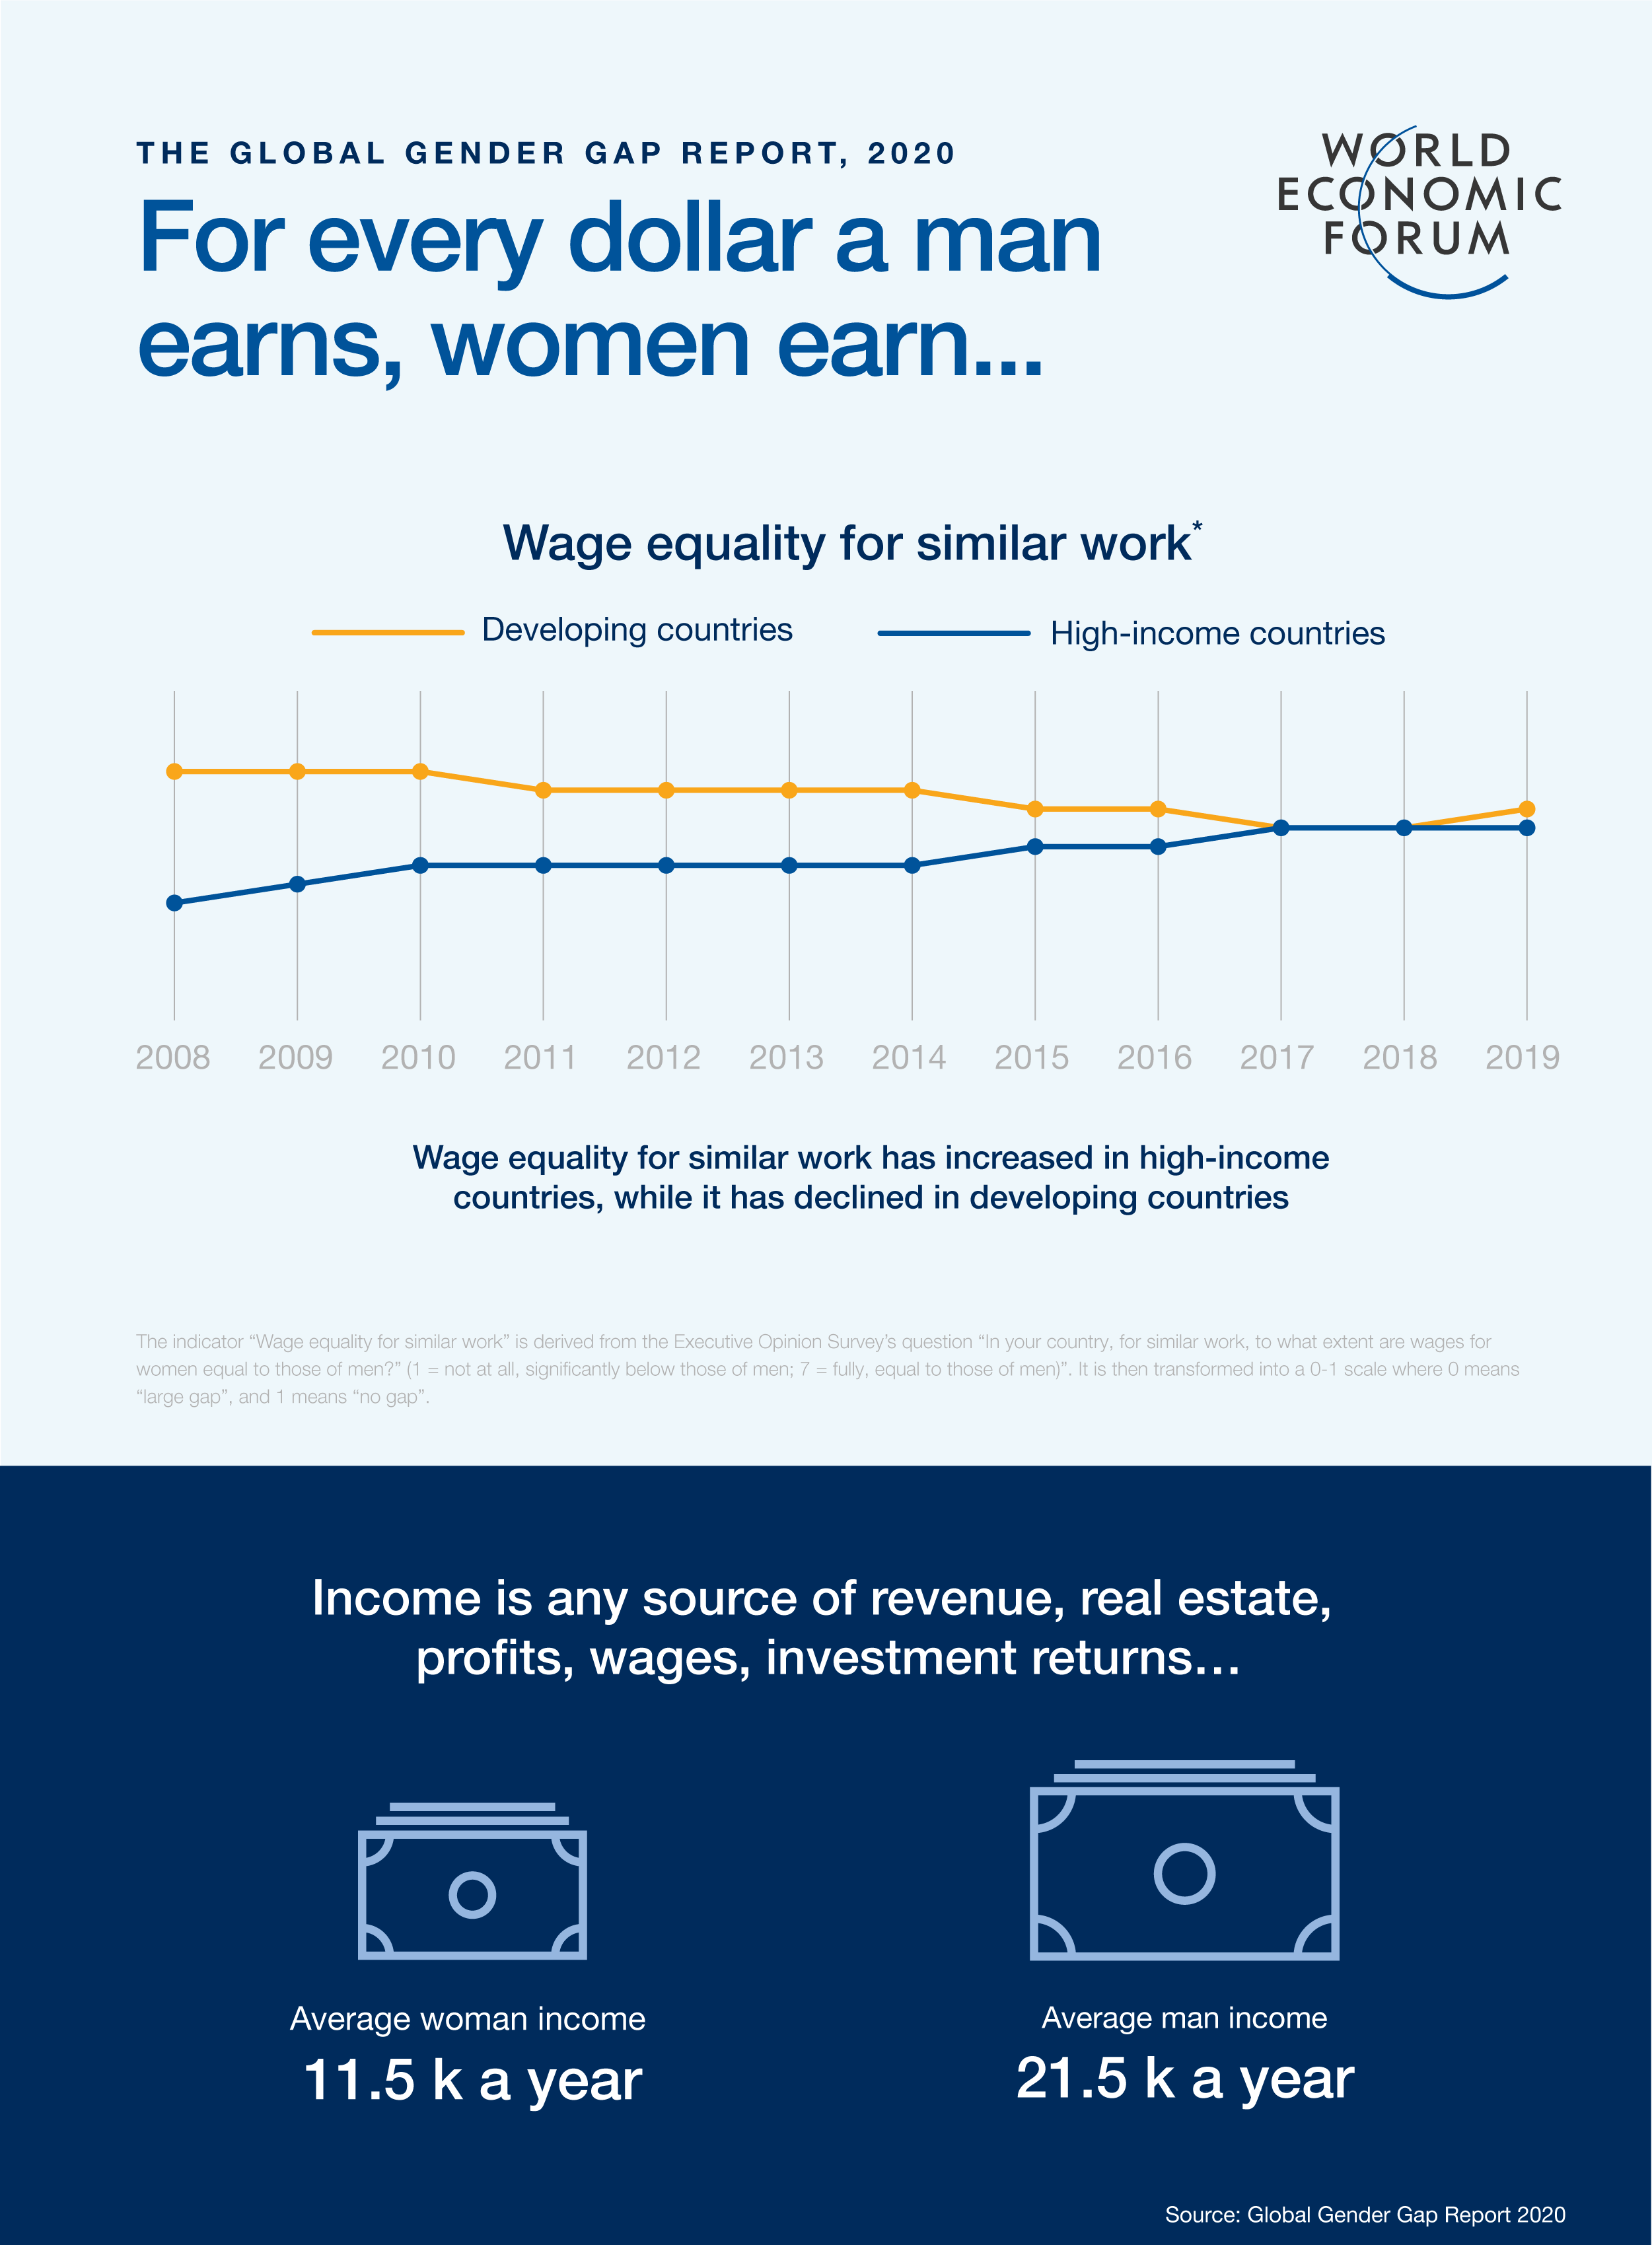 for every dollar a man earns, what does a woman earn? - Global Gender Gap Report 2020